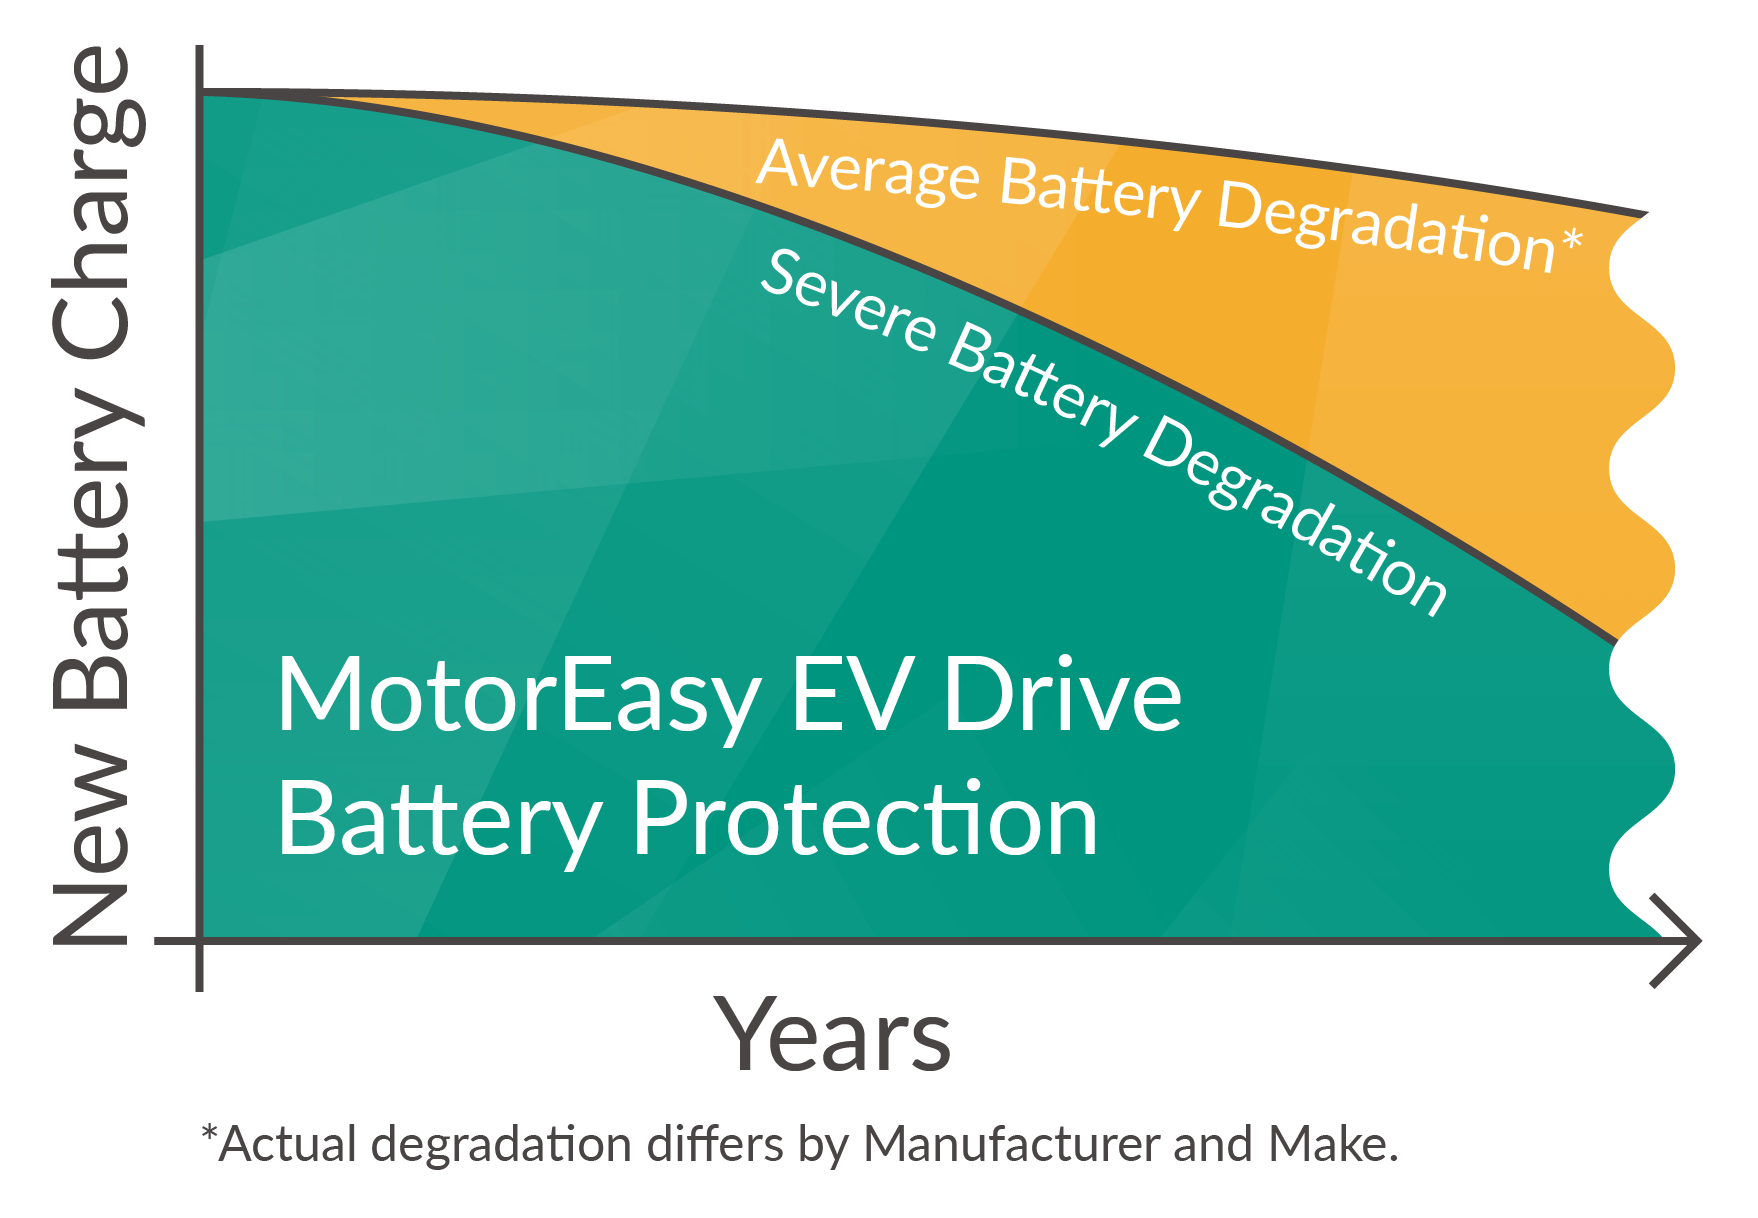 MotorEasy Electric Vehicle Warranty Diagram